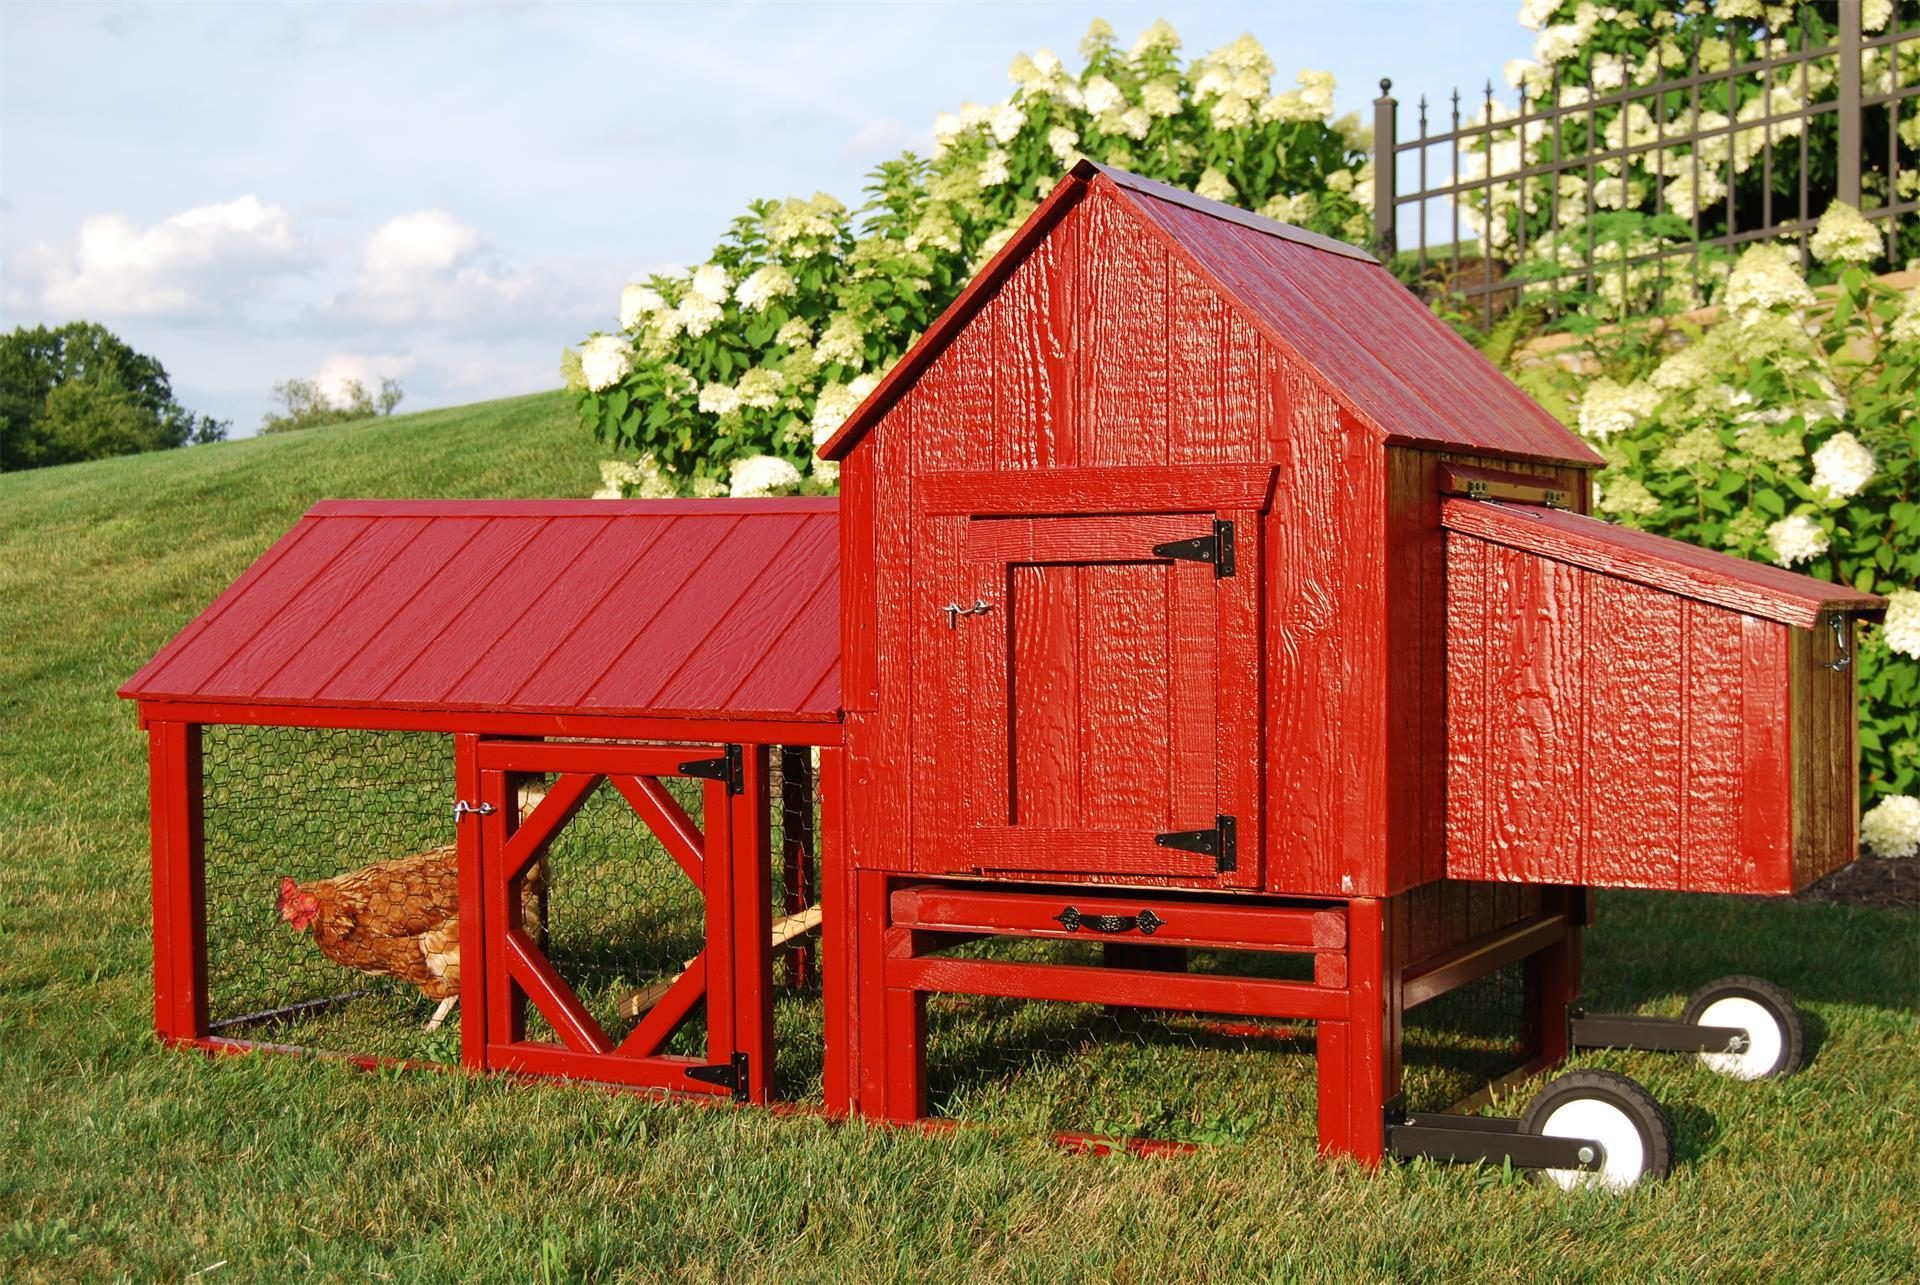 Barn Chicken Coop │backyard Mobile Chicken Coop │ Eco